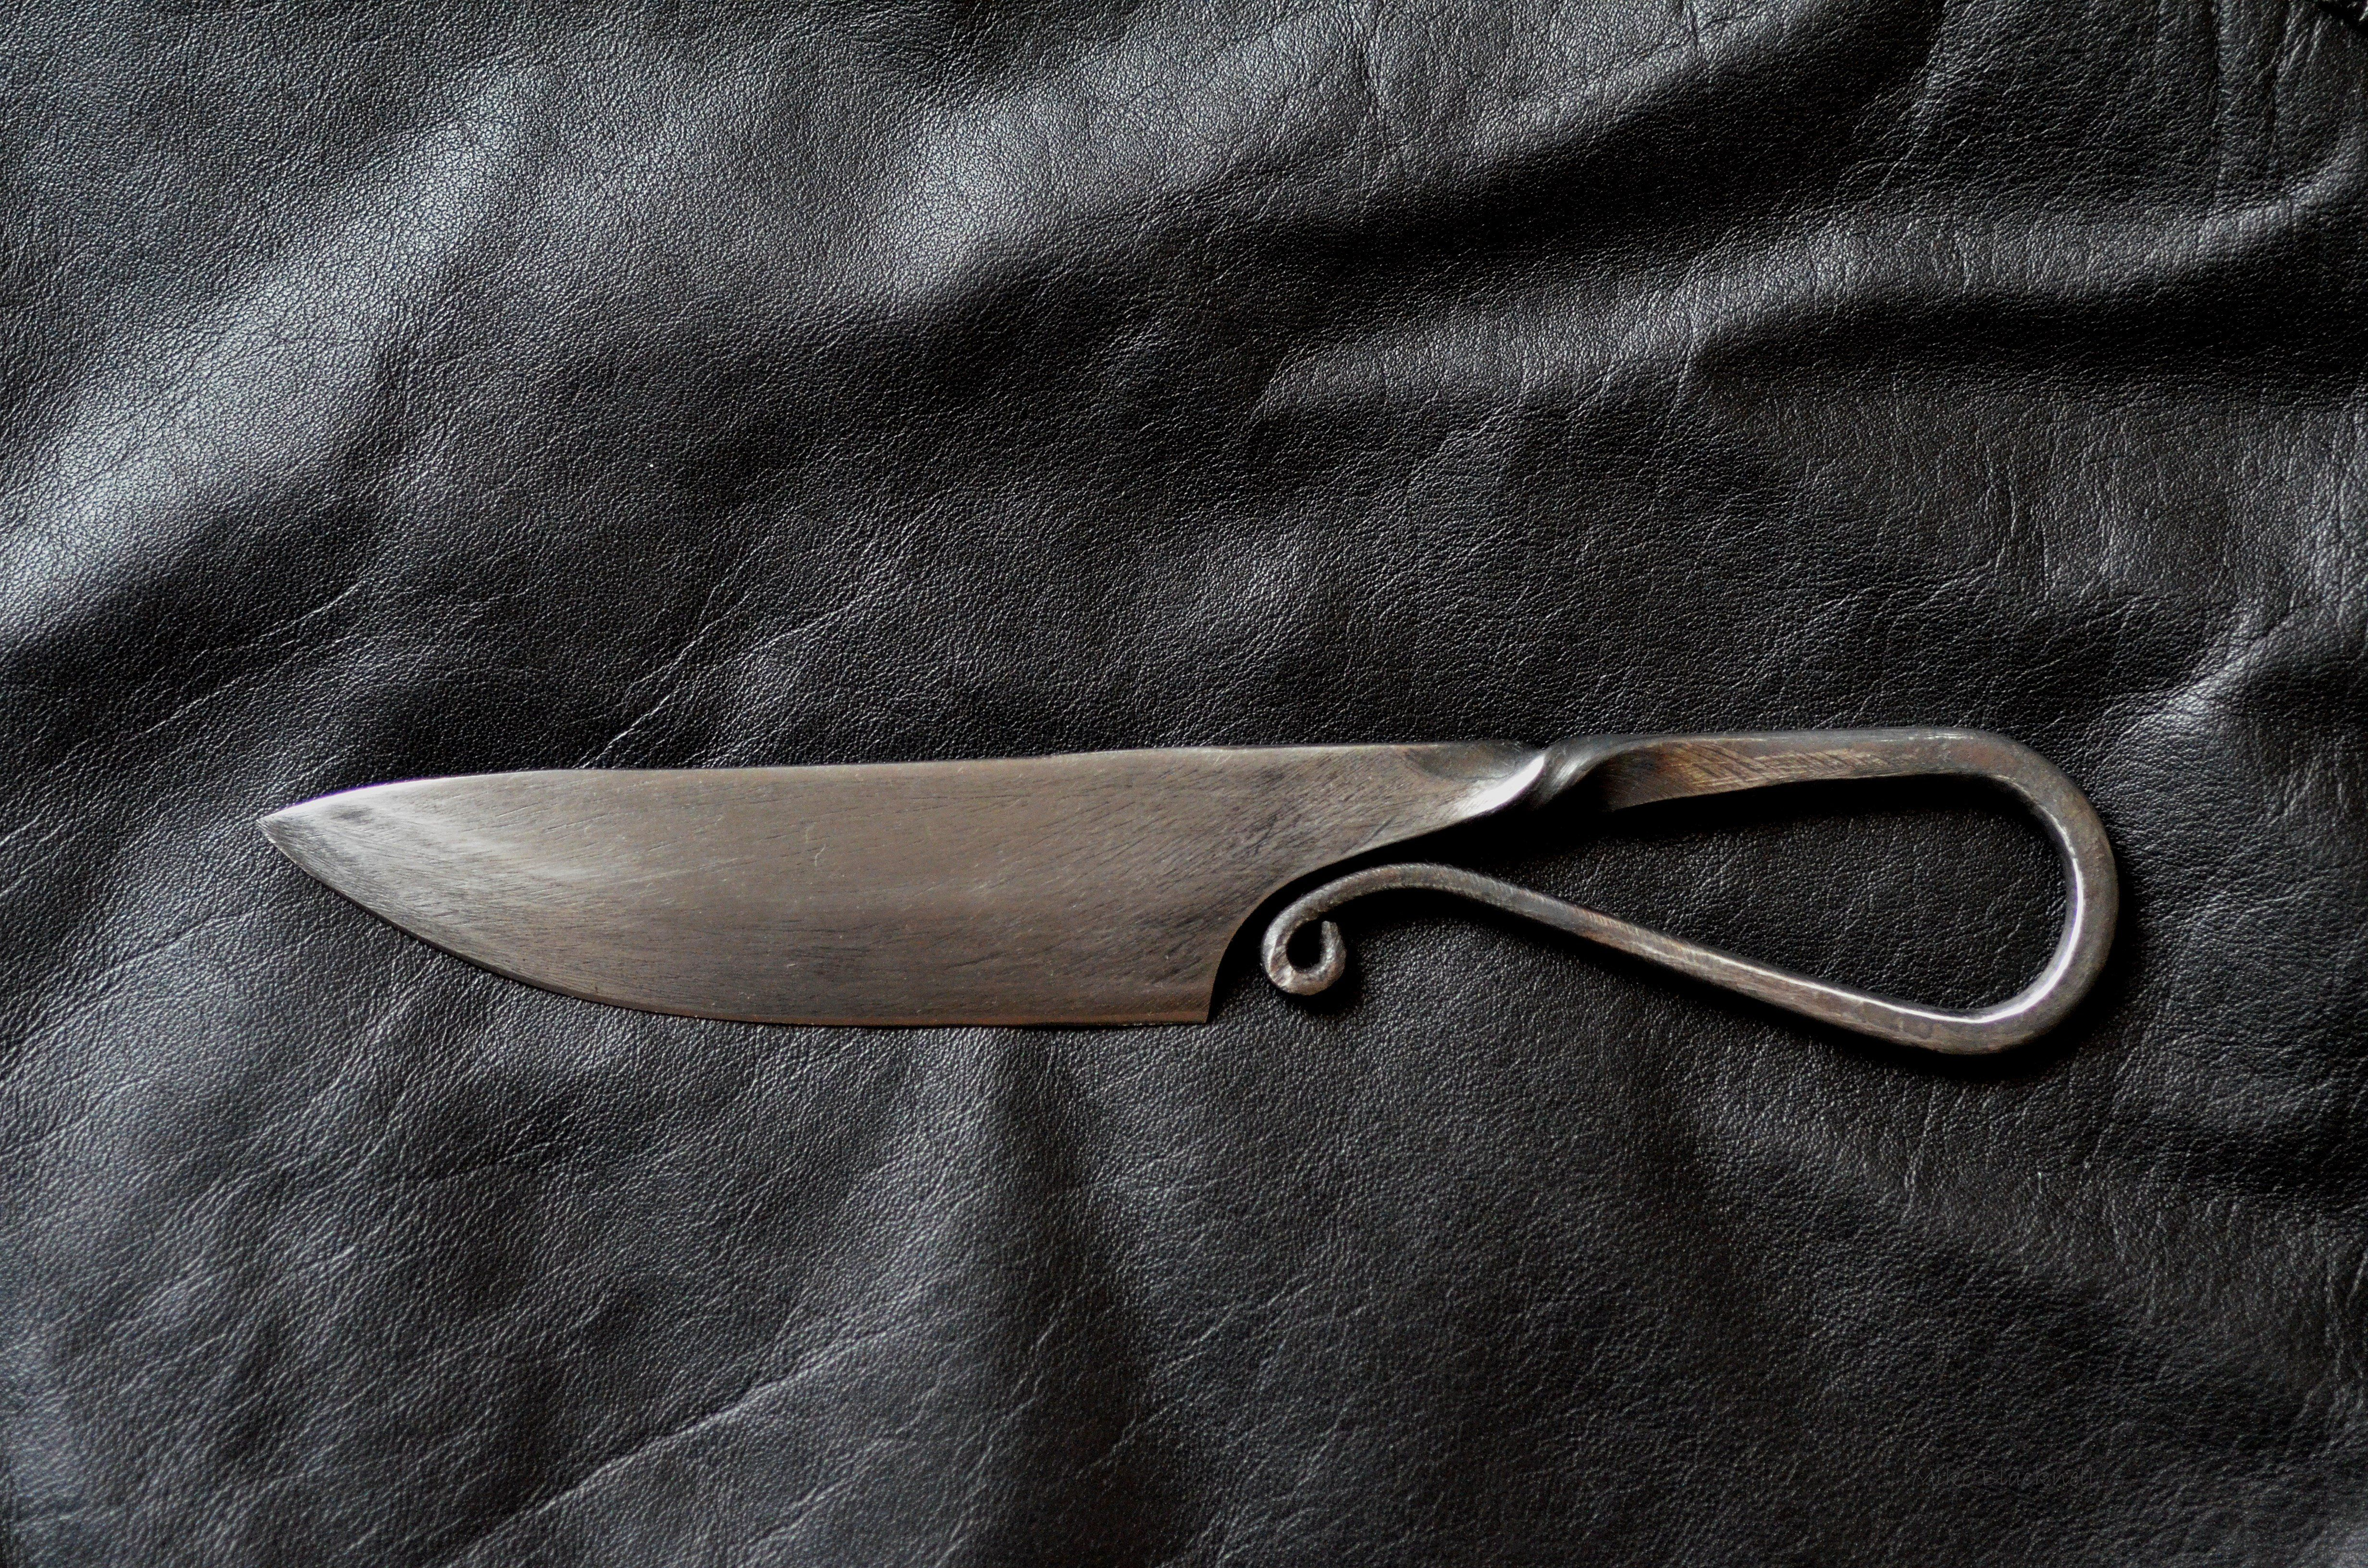 This viking style knife was forged from an old farriers file then hardened and tempered